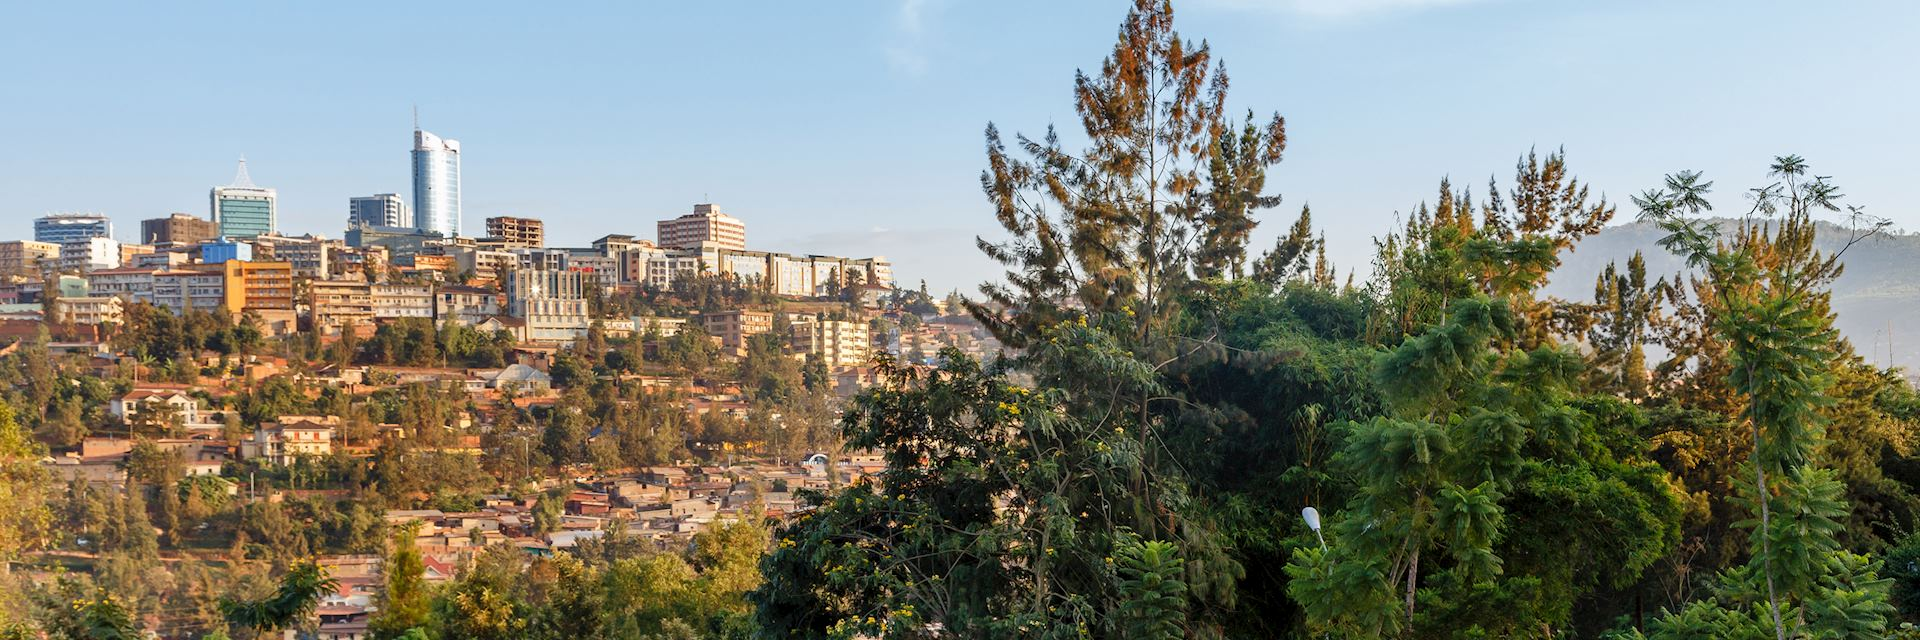 View of Kigali from the Genocide Memorial